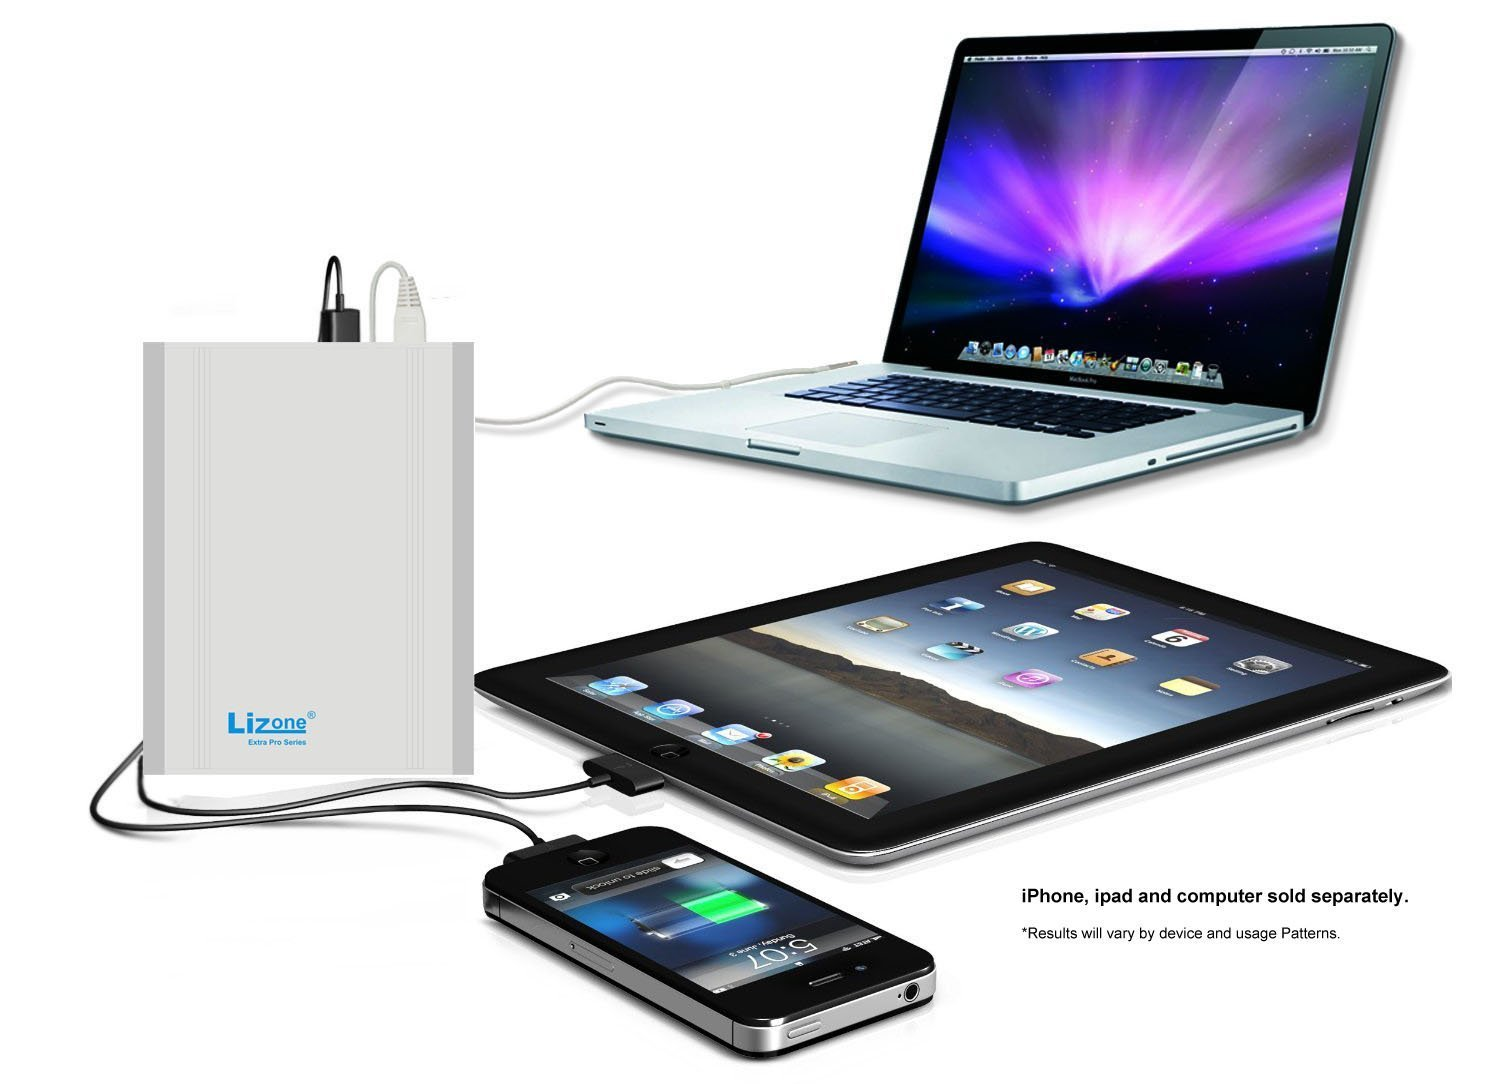 Lizone Extra Pro 40000mAh External Battery Charger for Apple MacBook Pro Air...HP and Lenovo...USB Power Bank Charger for Apple iPad iPhone; Samsung MOTO LG HTC...Aluminum UniBody Silver 40000mAh